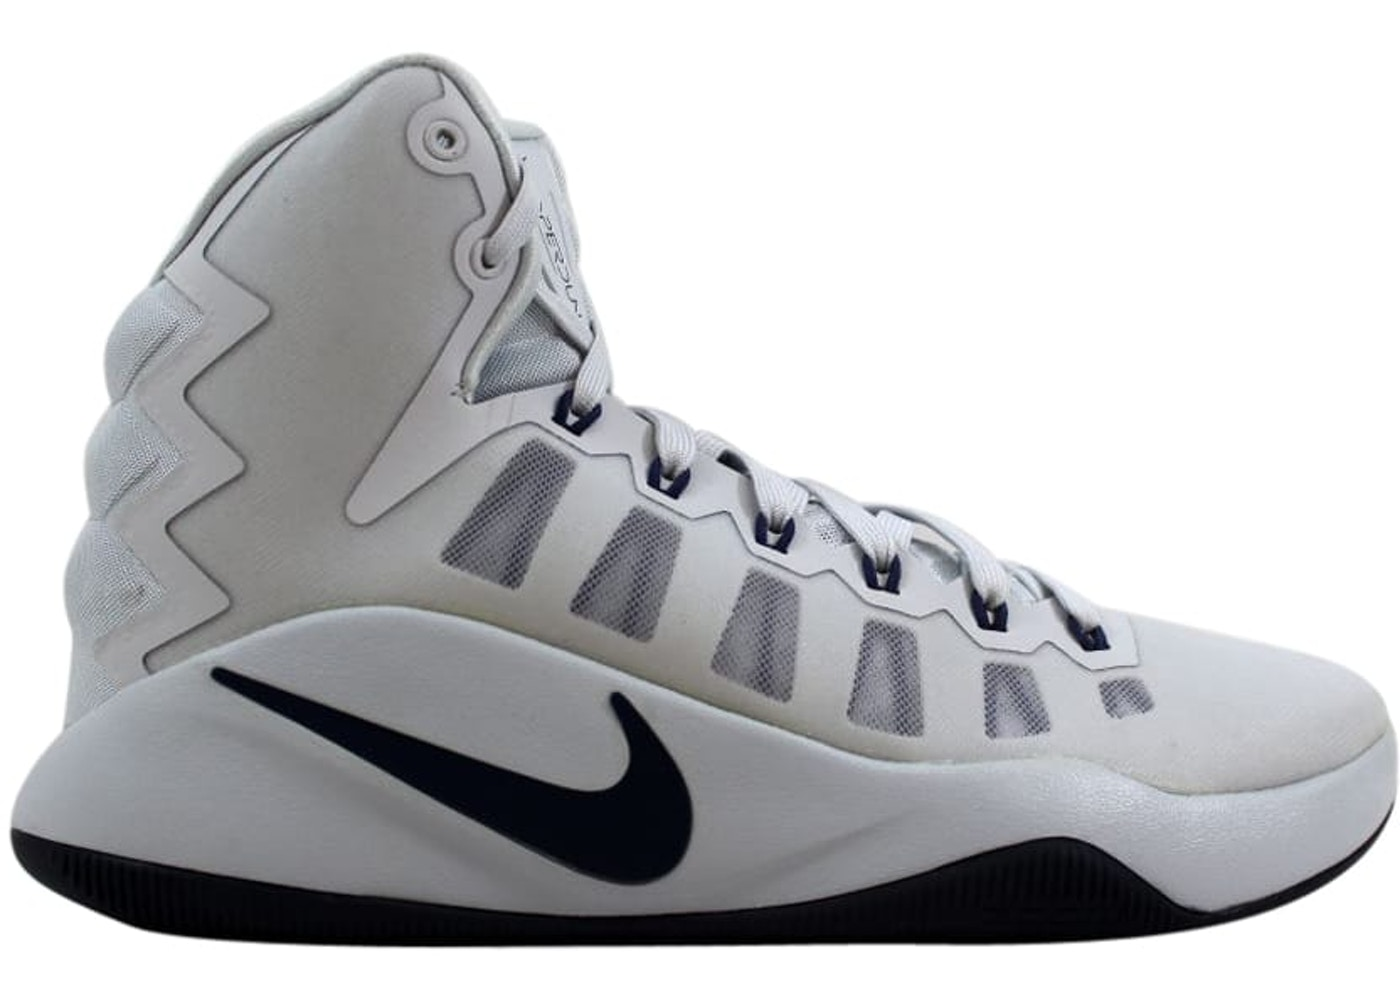 7dd52c724b2 Nike Basketball Hyperdunk Shoes - Most Popular